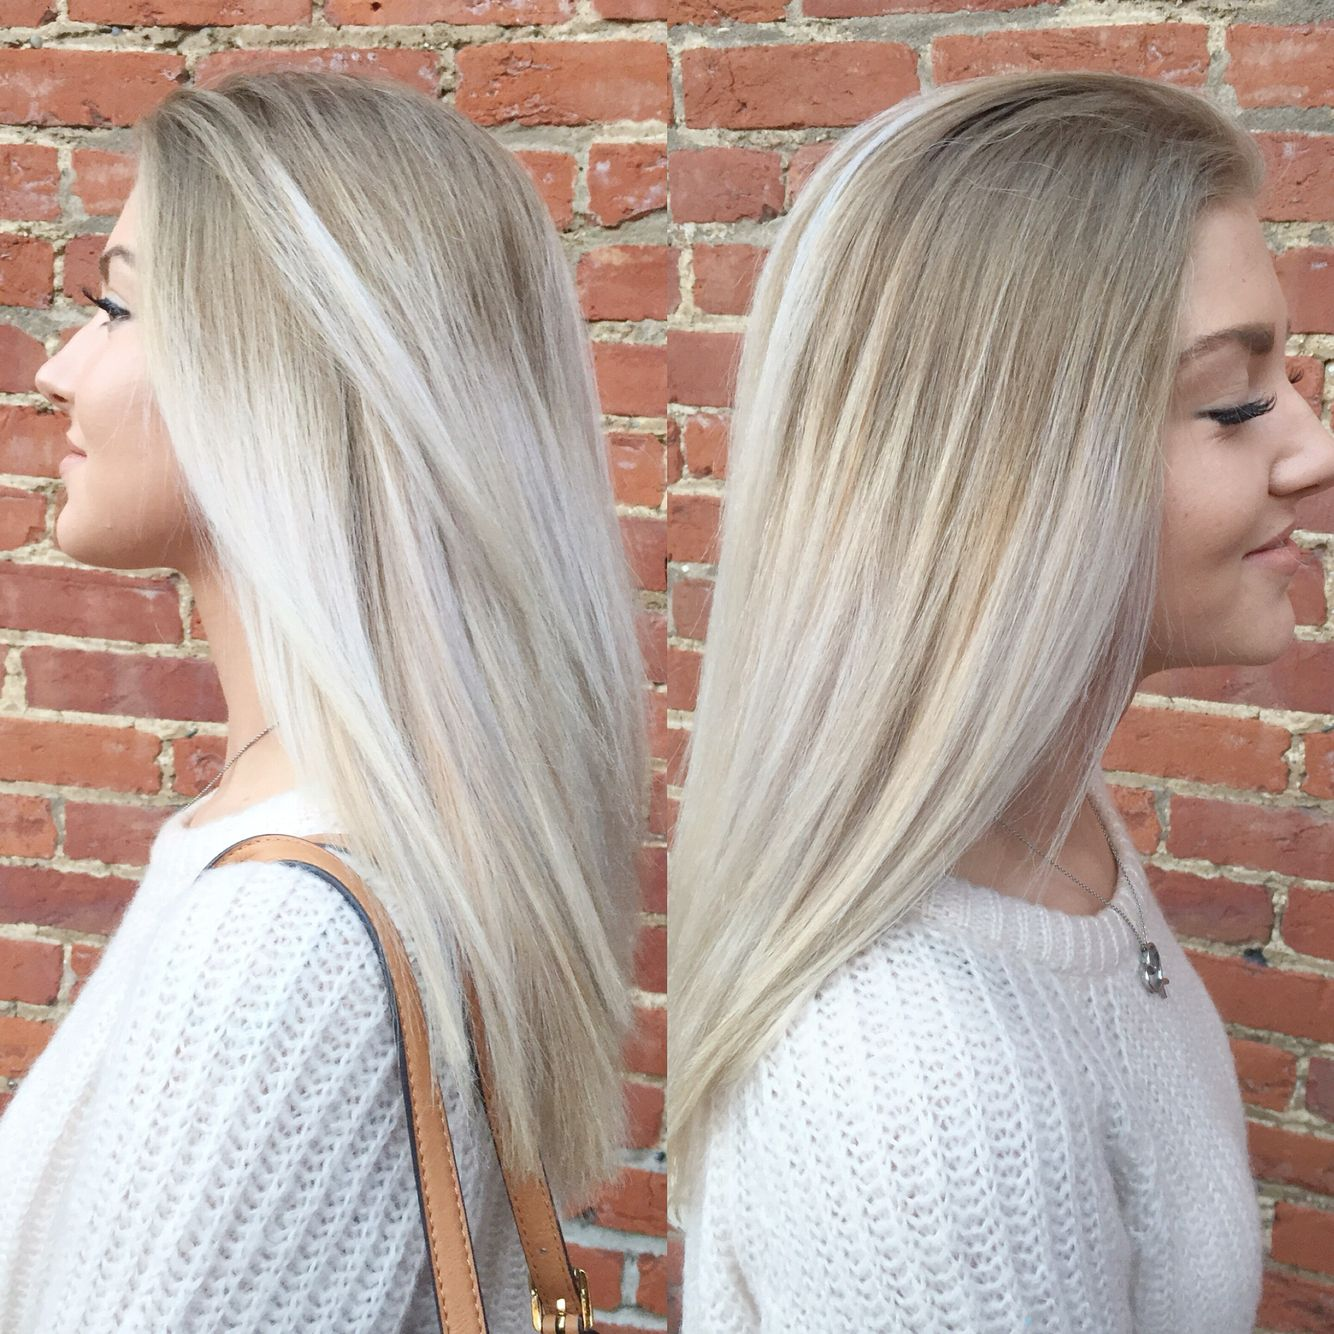 icy blonde ombr hair